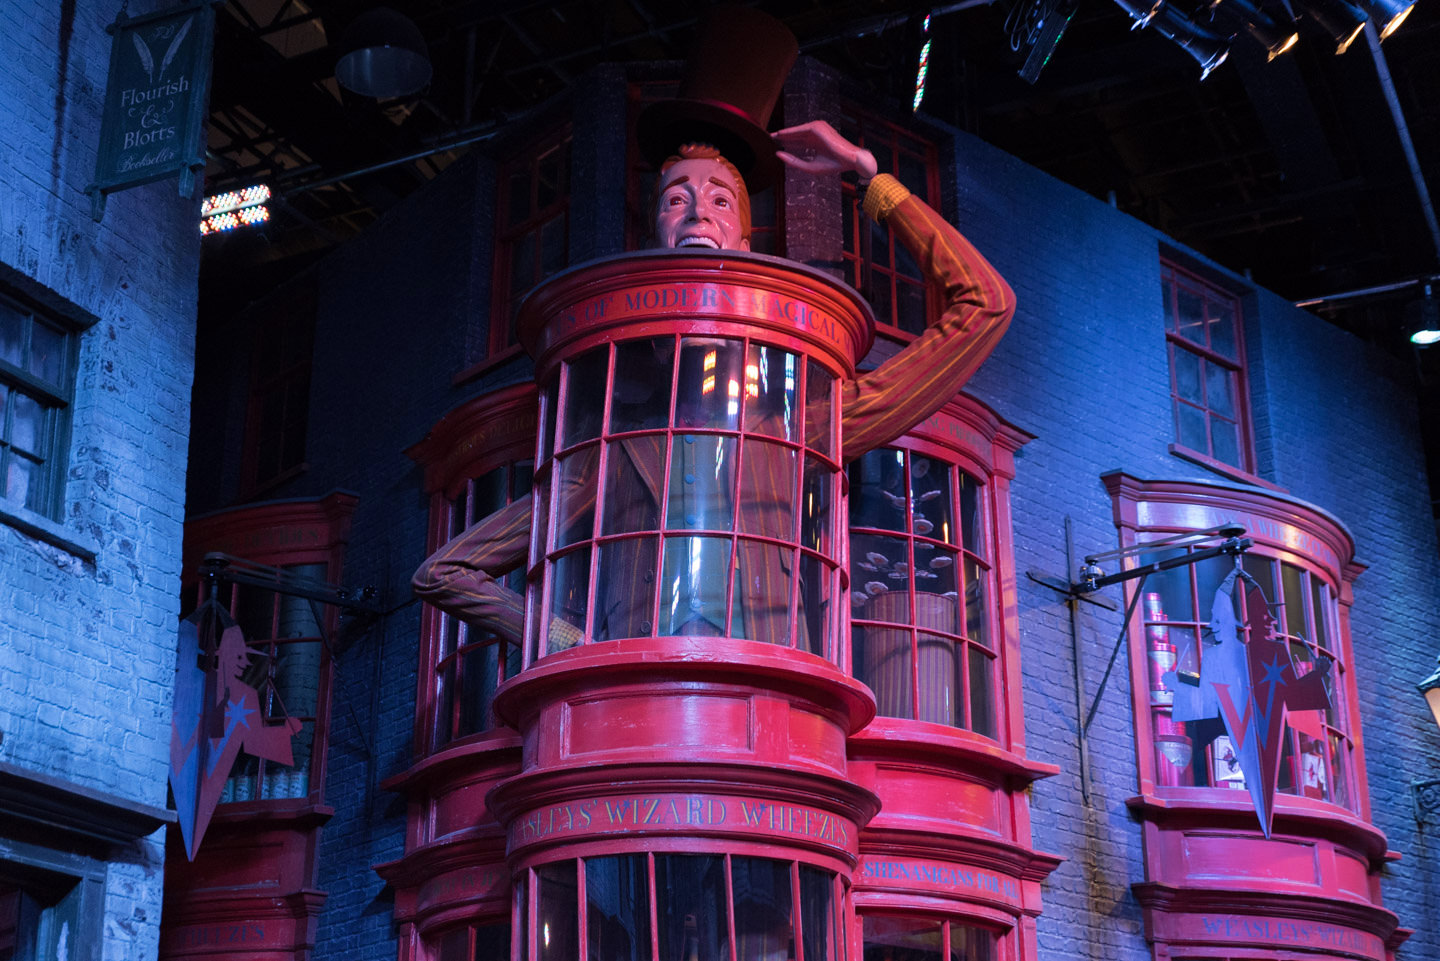 Blog-Mode-And-The-City-Lifestyle-Visite-Studios-Harry-Potter-Londres-28